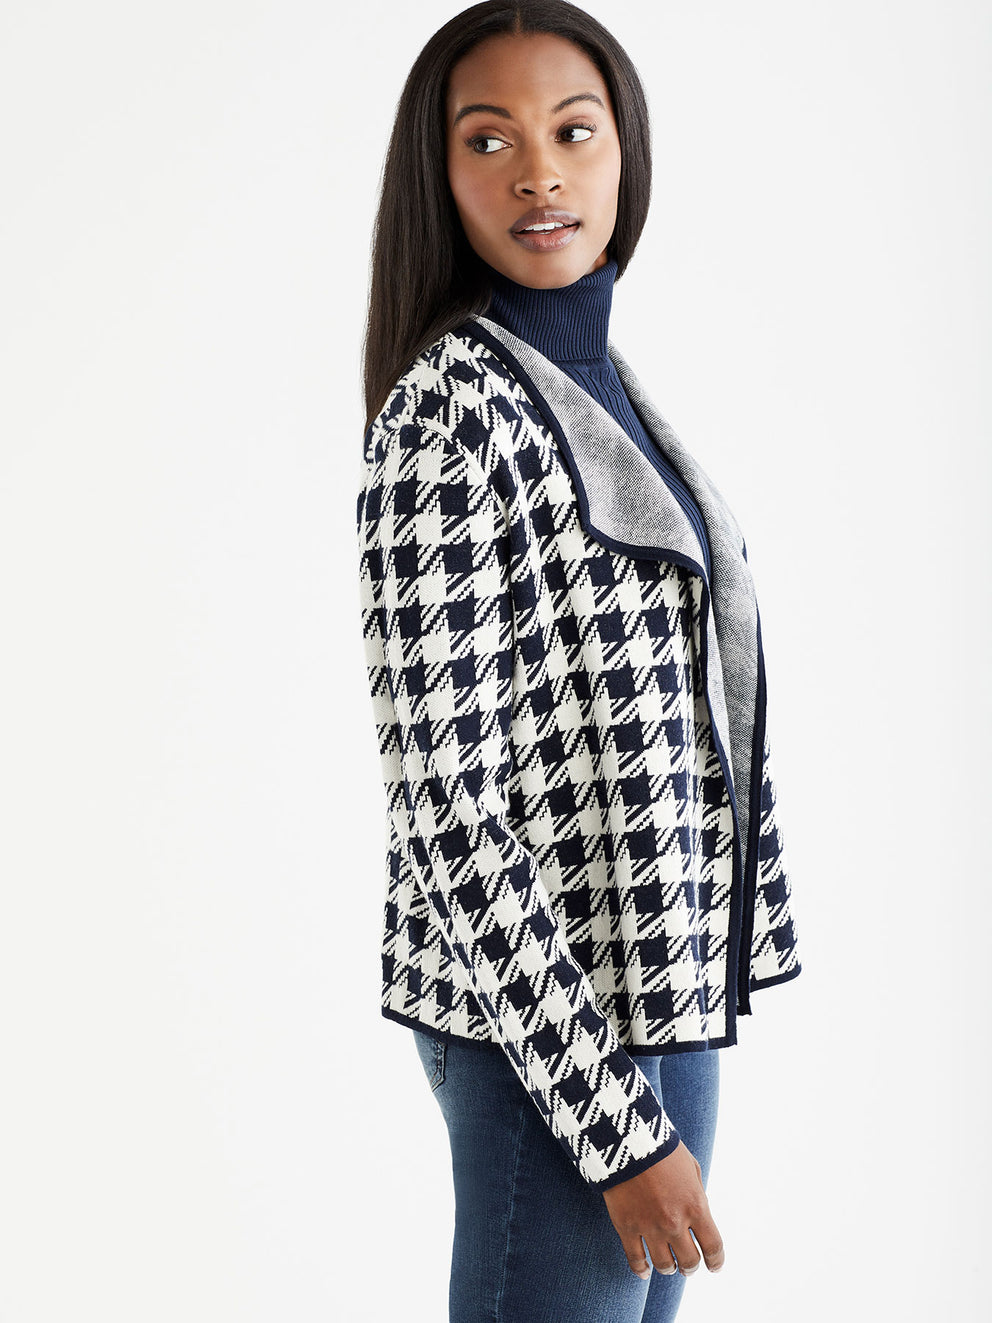 The Jones New York Houndstooth Cardigan in color Navy Ivory Houndstooth - Image Position 2